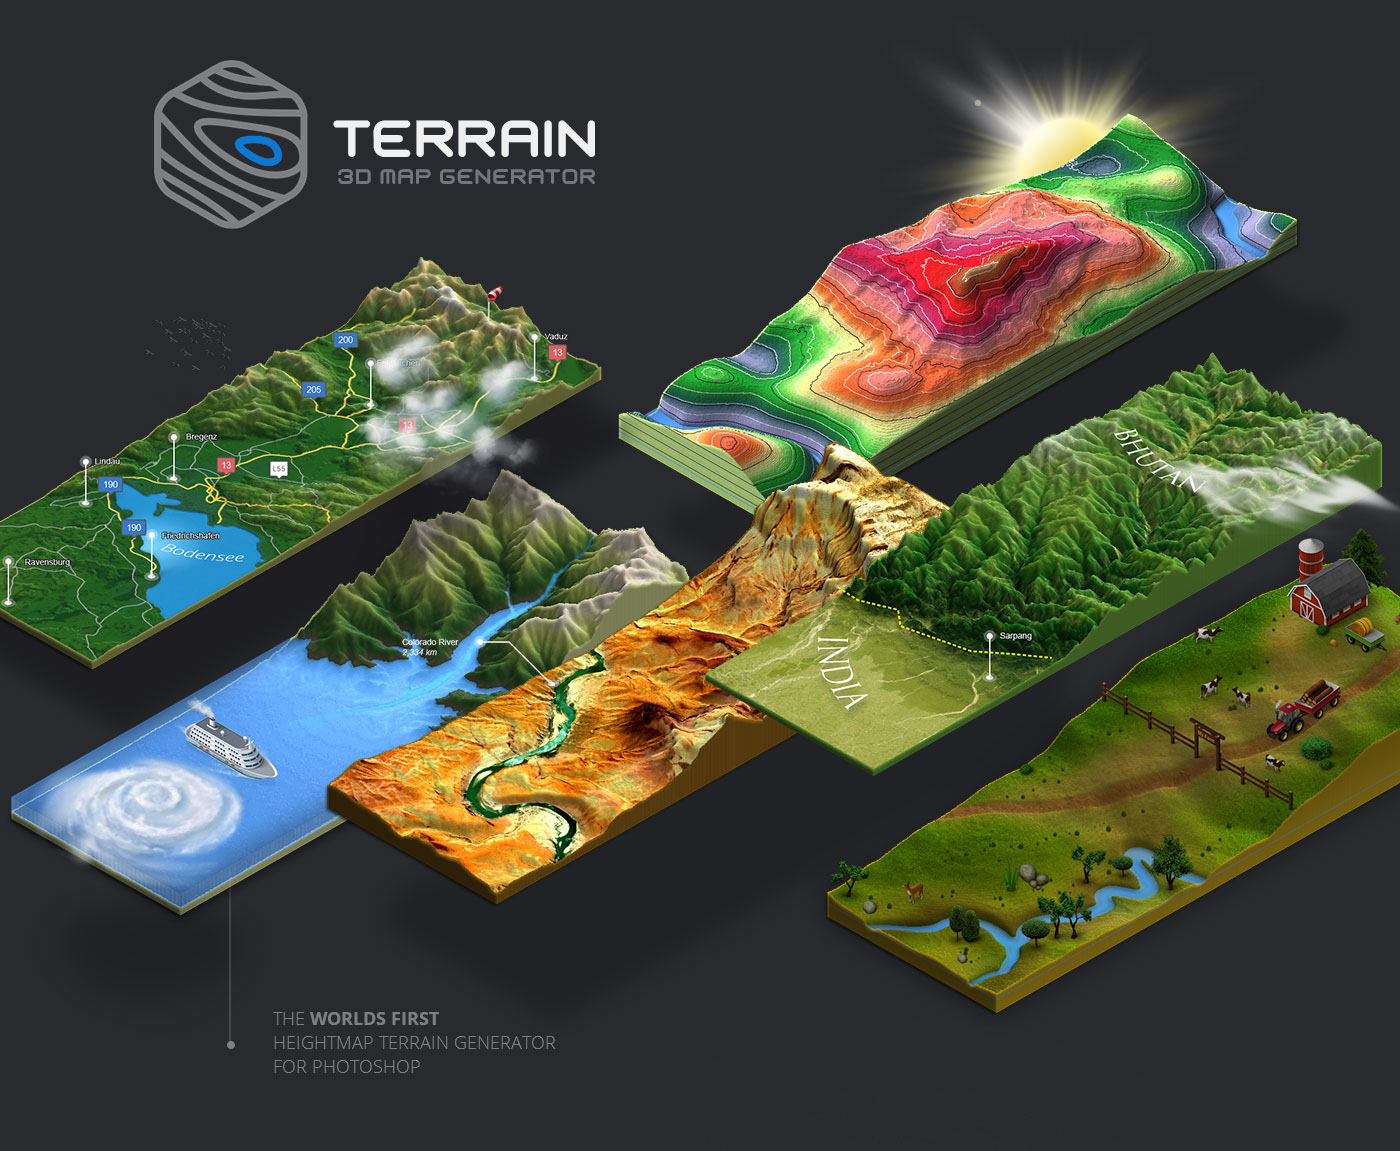 3D Map Generator   Terrain on Behance 3D Map Generator   Terrain